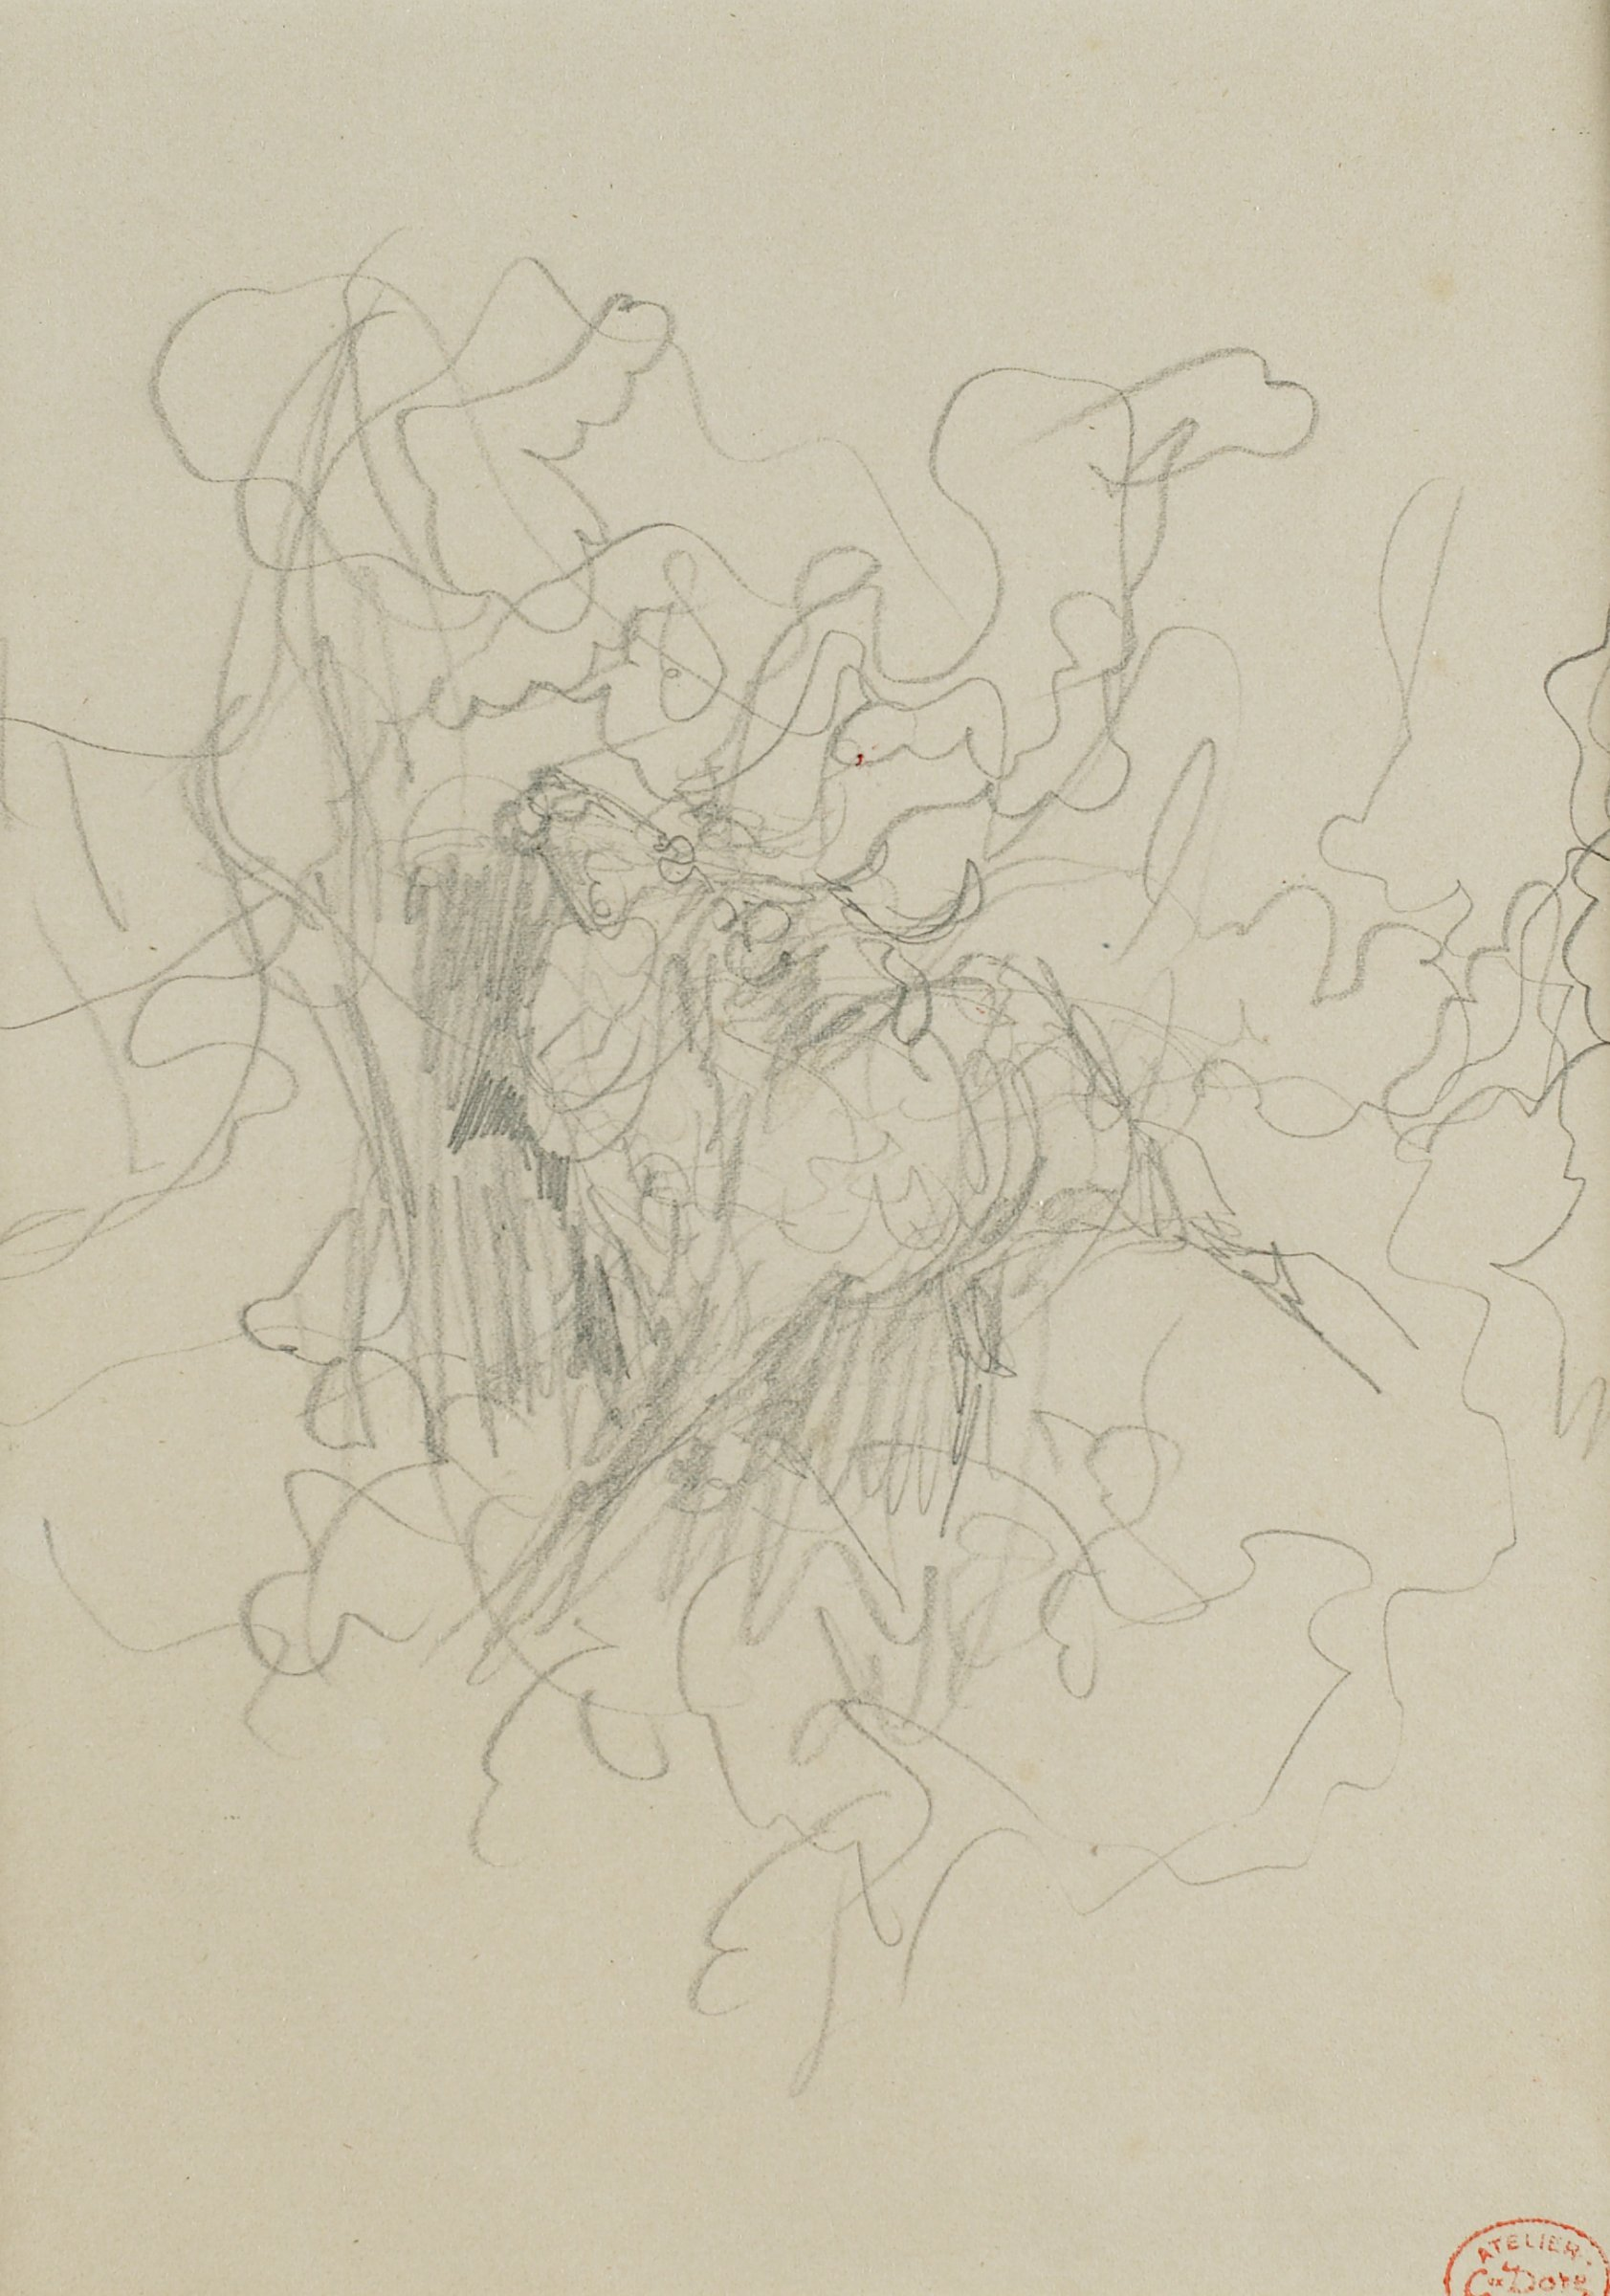 A sketch of a loose pattern of swirling lines with a concentration of vertical lines near the center of the composition.